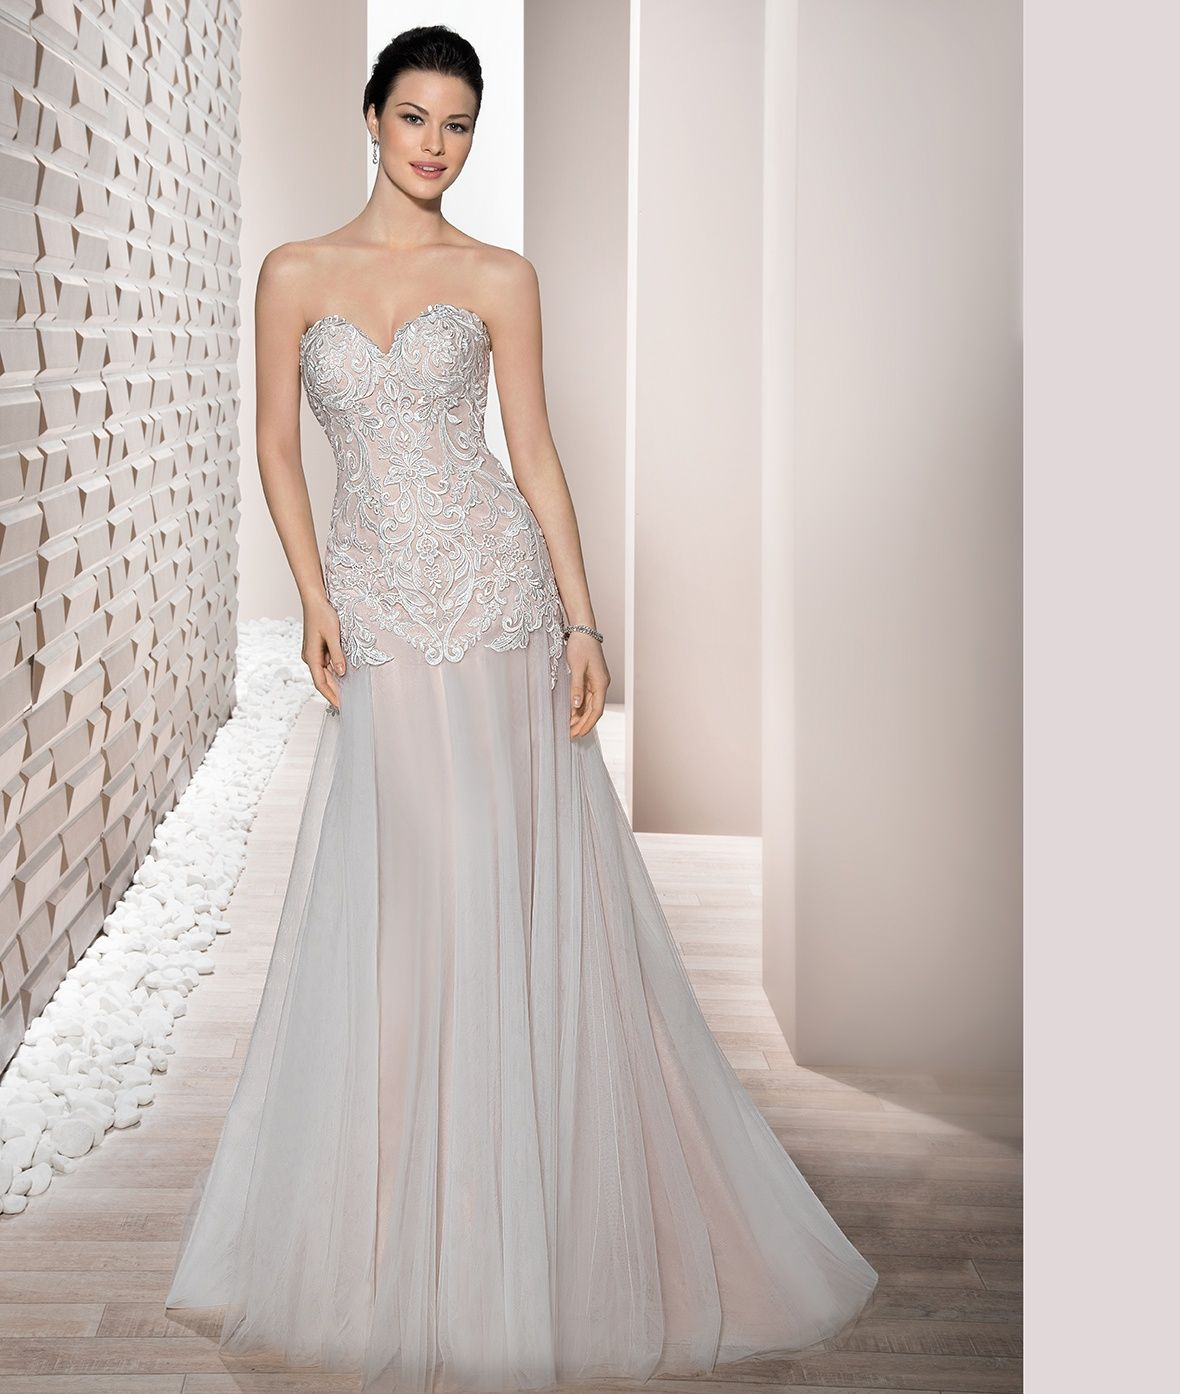 This Flowing, Strapless, A-line Gown With Sweetheart